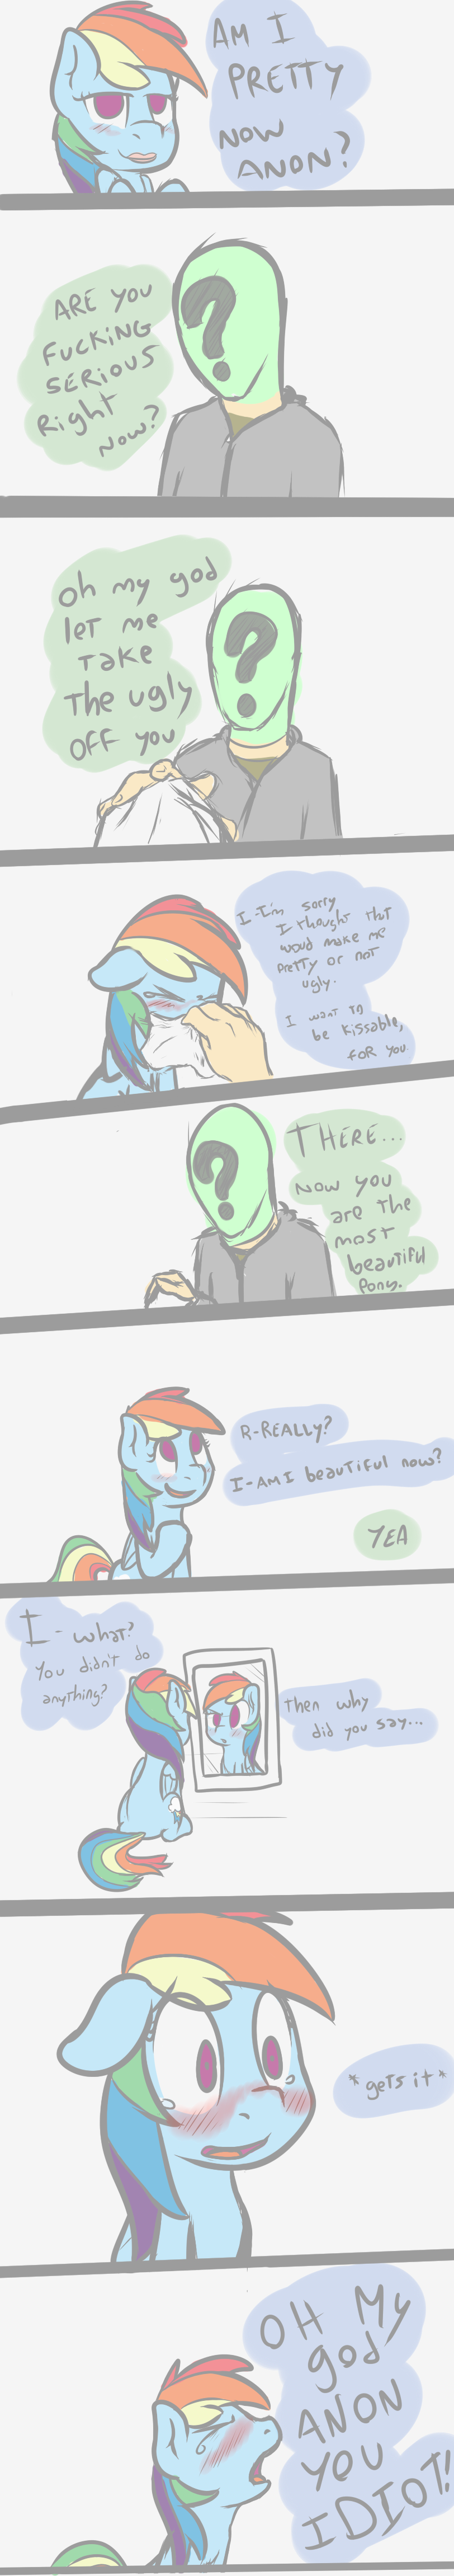 Anon Mlp Comic equestria daily - mlp stuff!: 20+ awesome rainbow dash